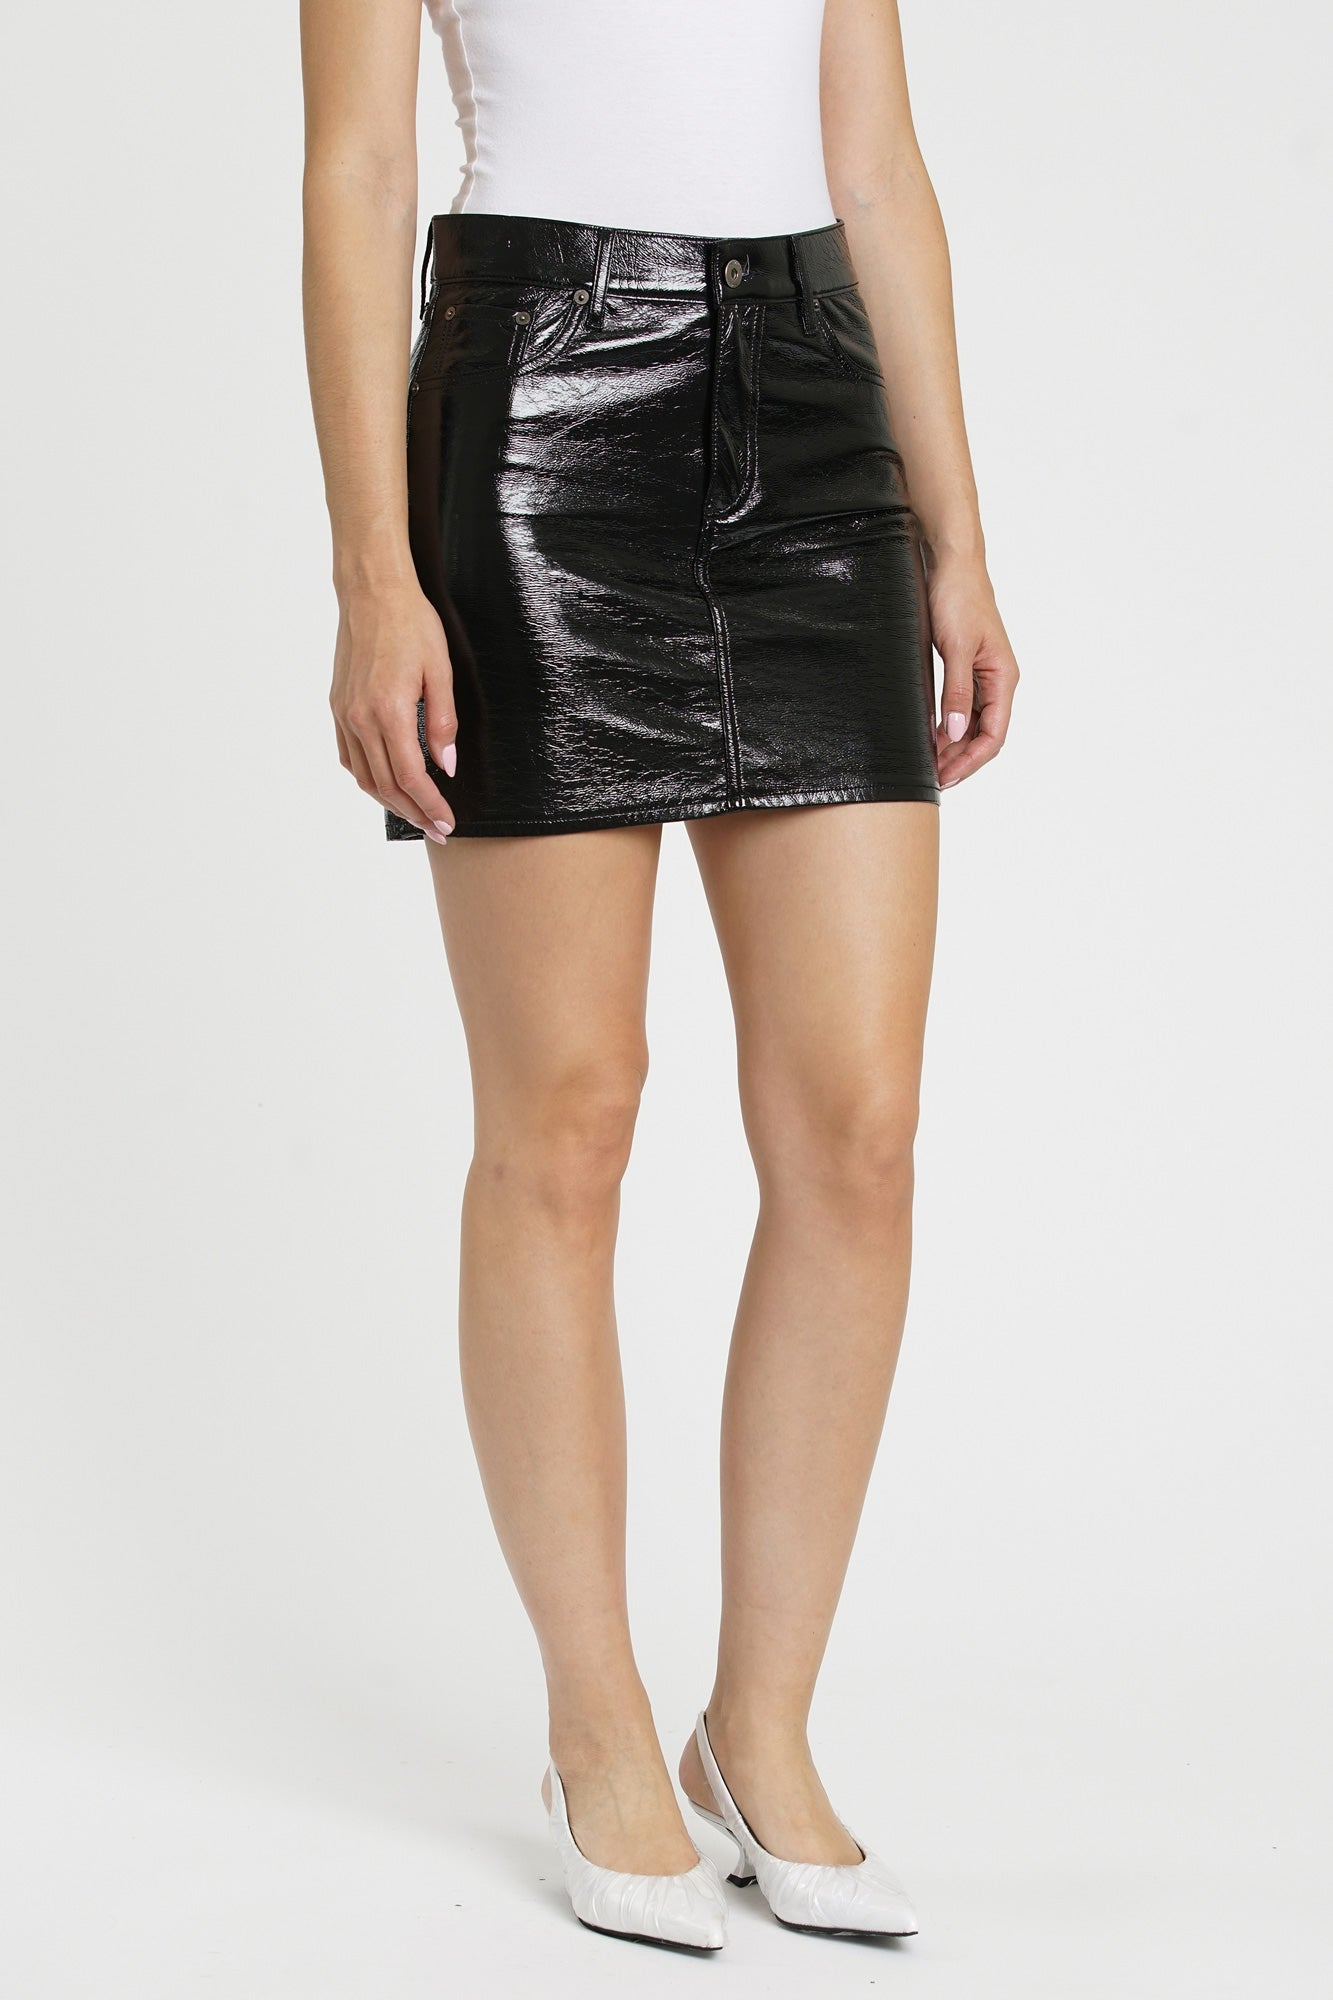 Sierra Shiny PU Retro High Rise Skirt - Midnight Train